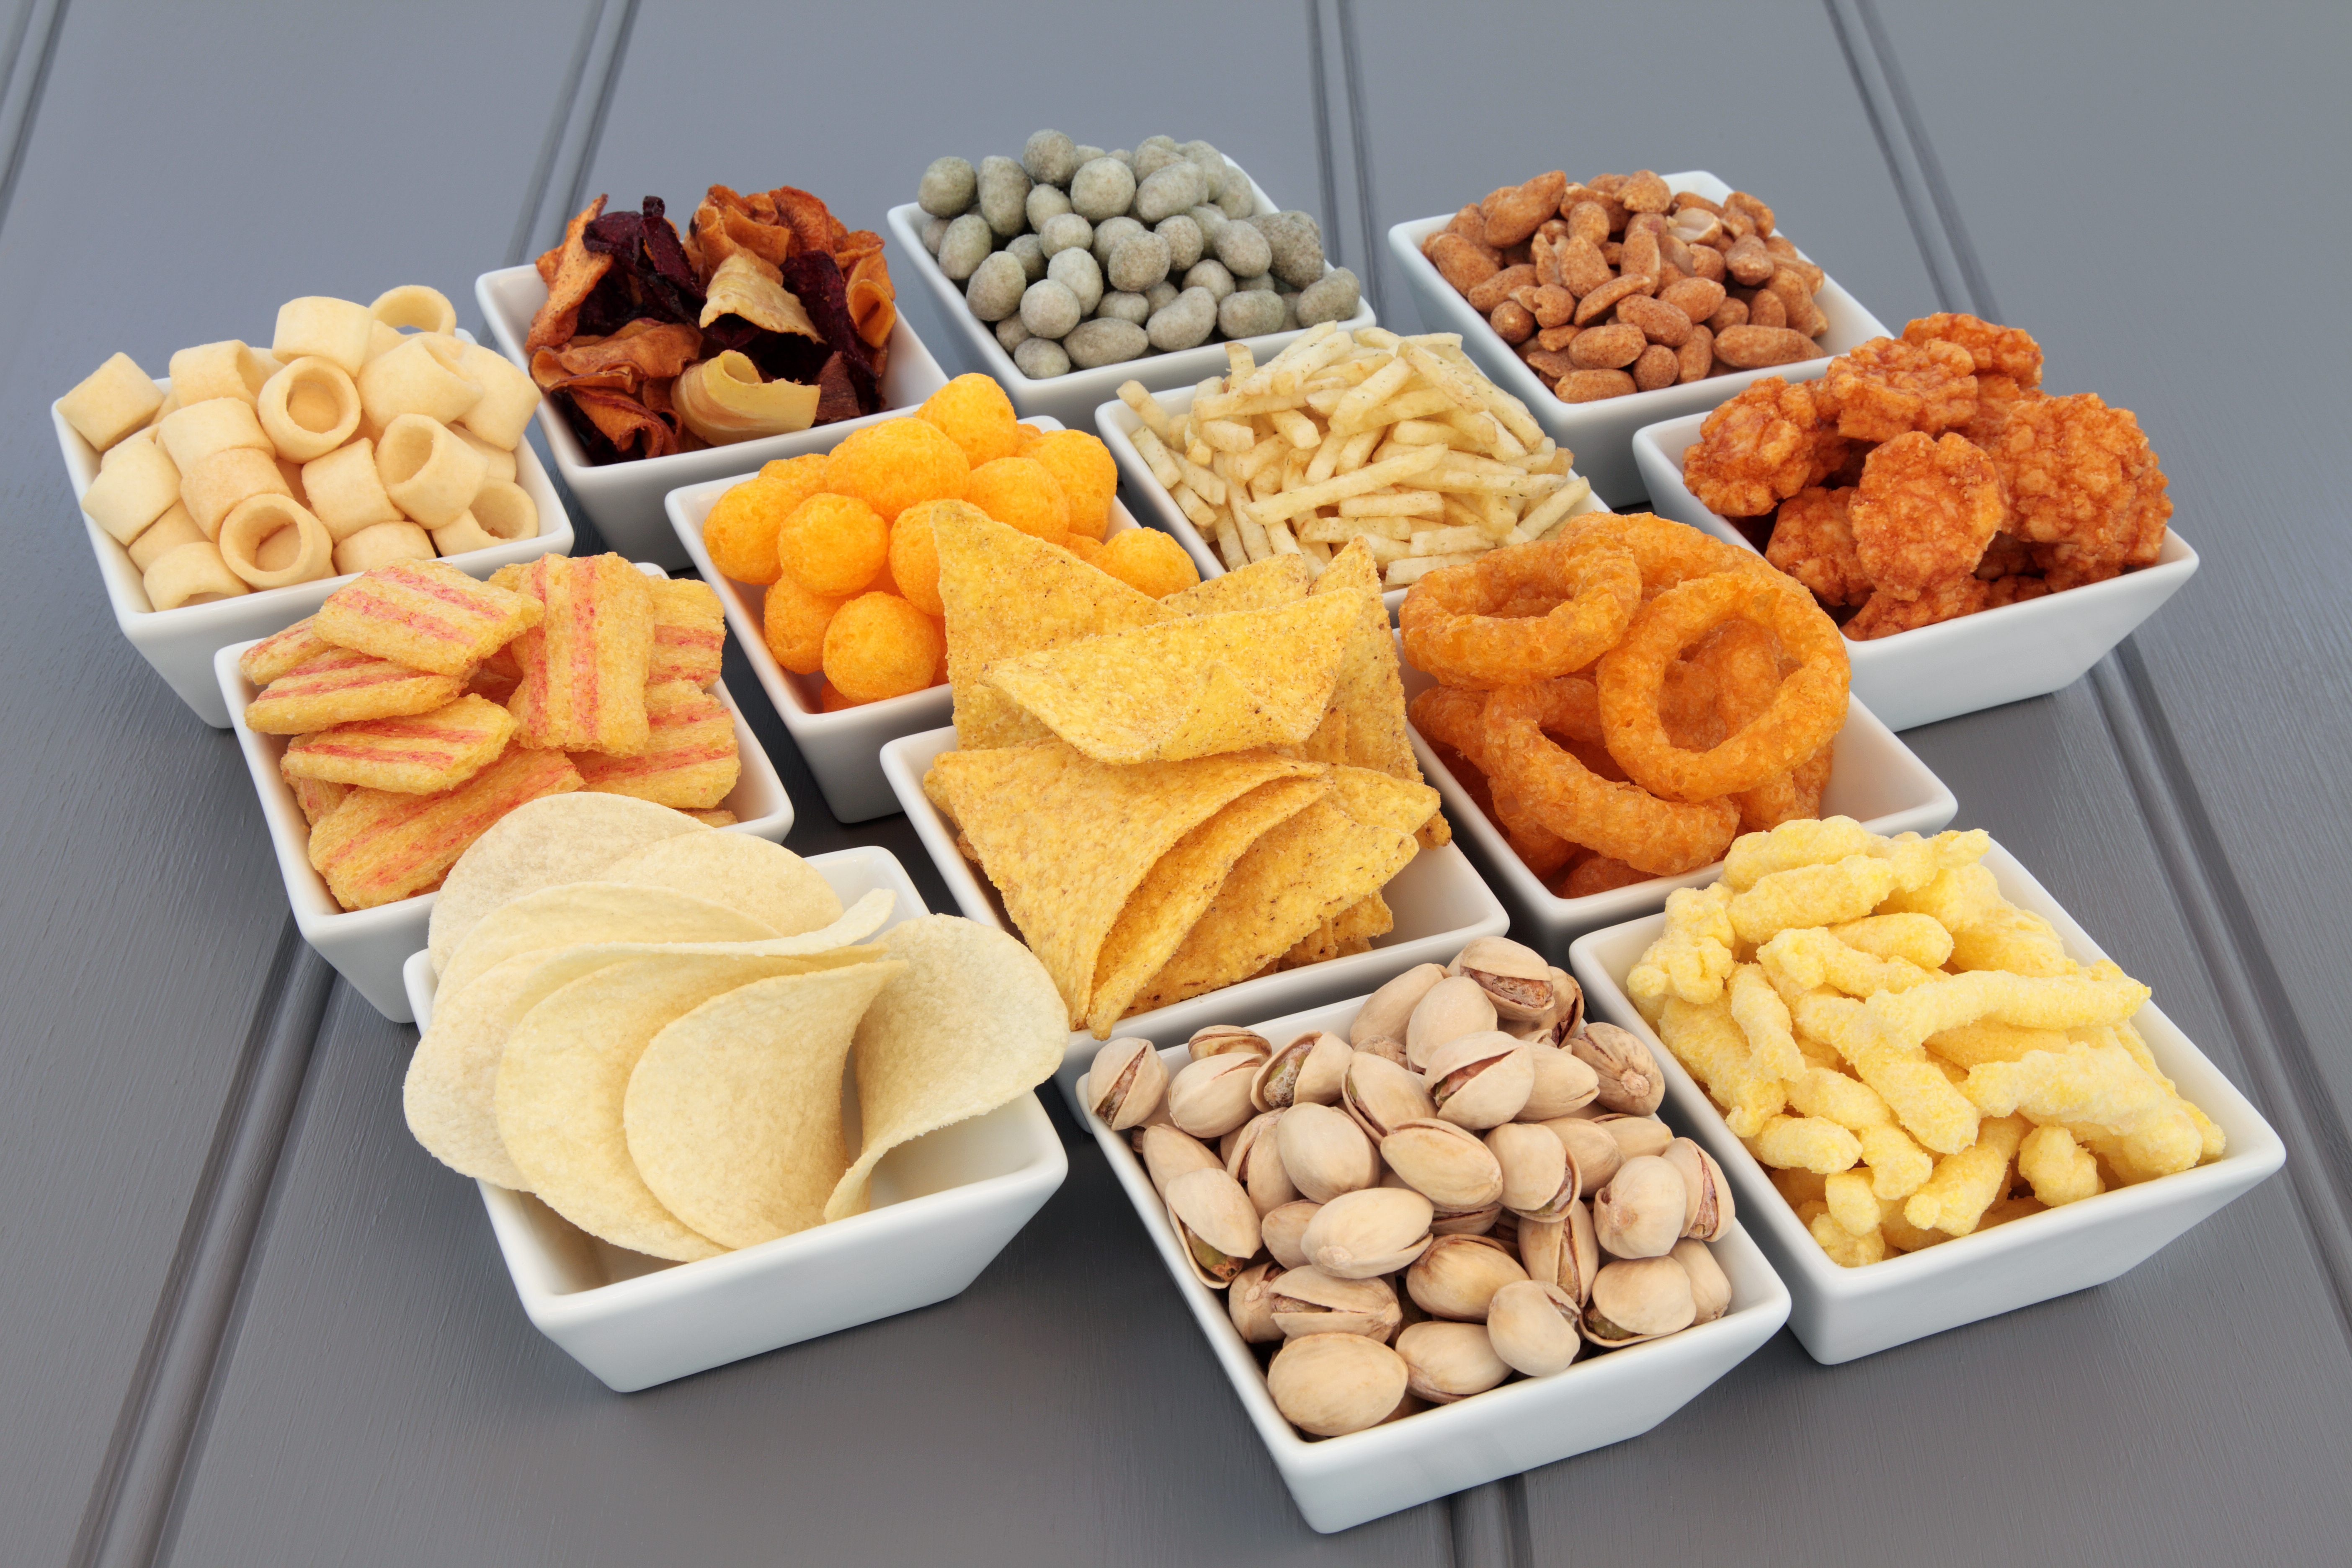 America Loves Junk Food 61 Of Our Calories Are From